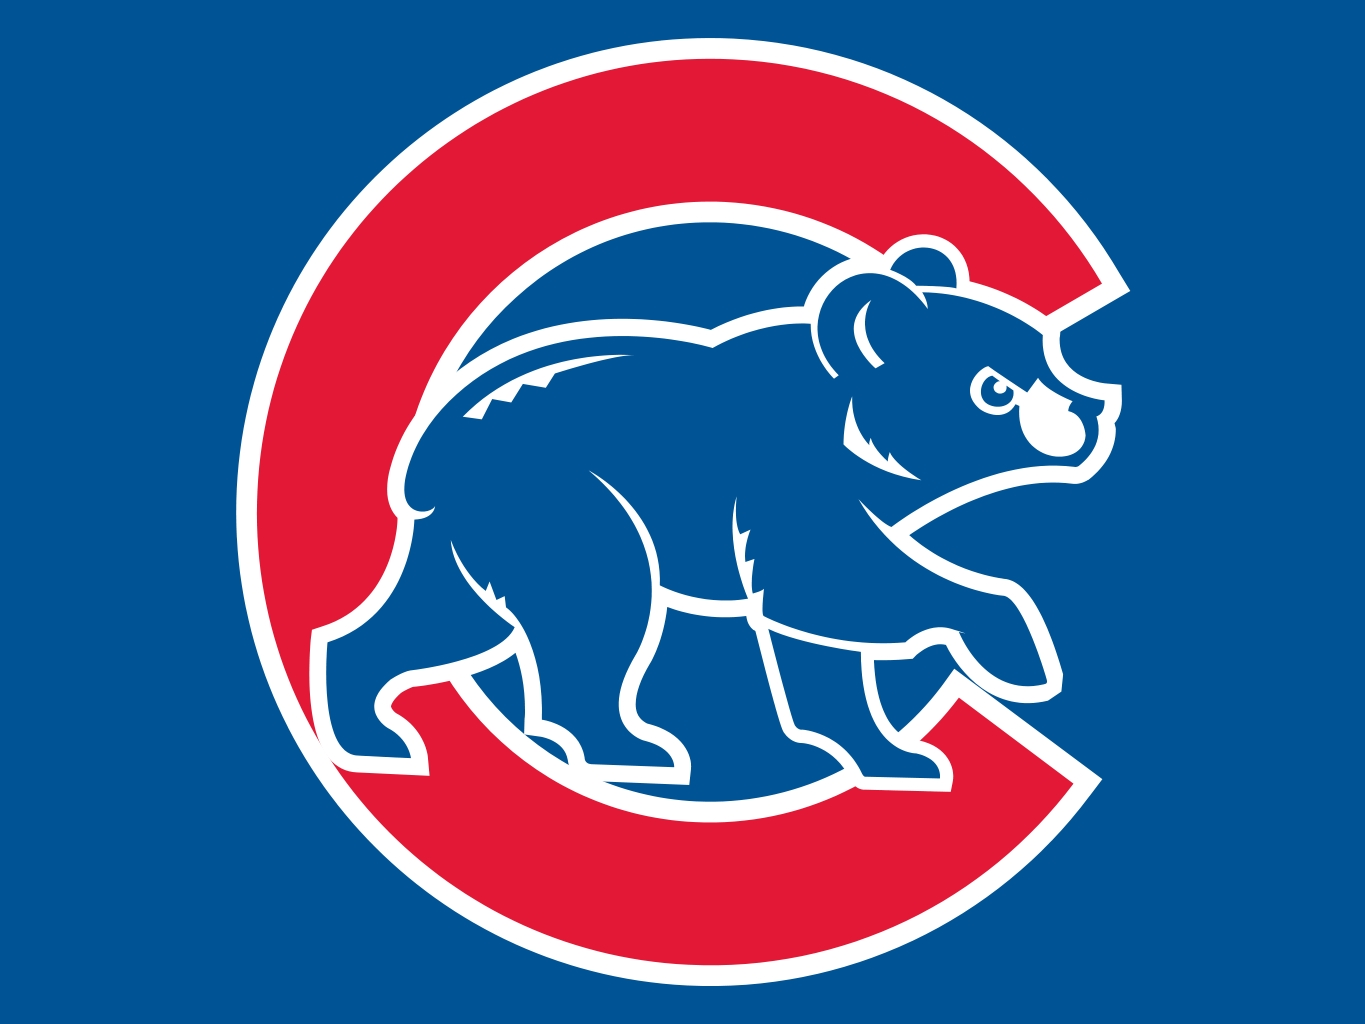 Chicago cubs wallpaper and background image 1365x1024 id 612447 wallpaper abyss - Cubs background ...